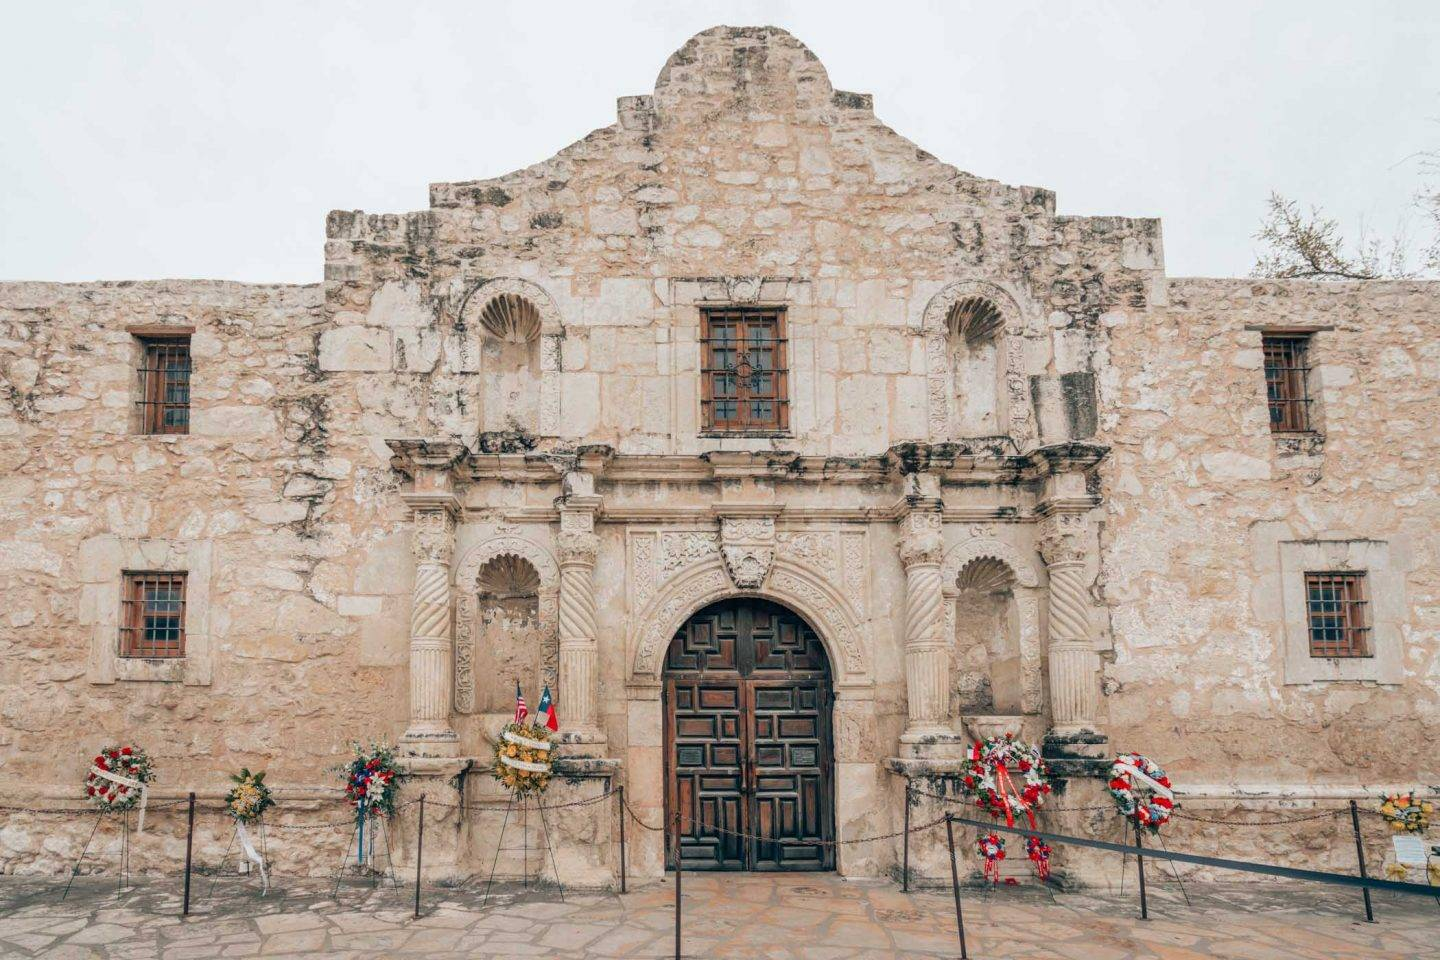 Find the best things to do in San Antonio Texas- including checking the Alamo #Texas #visitTexas #USA